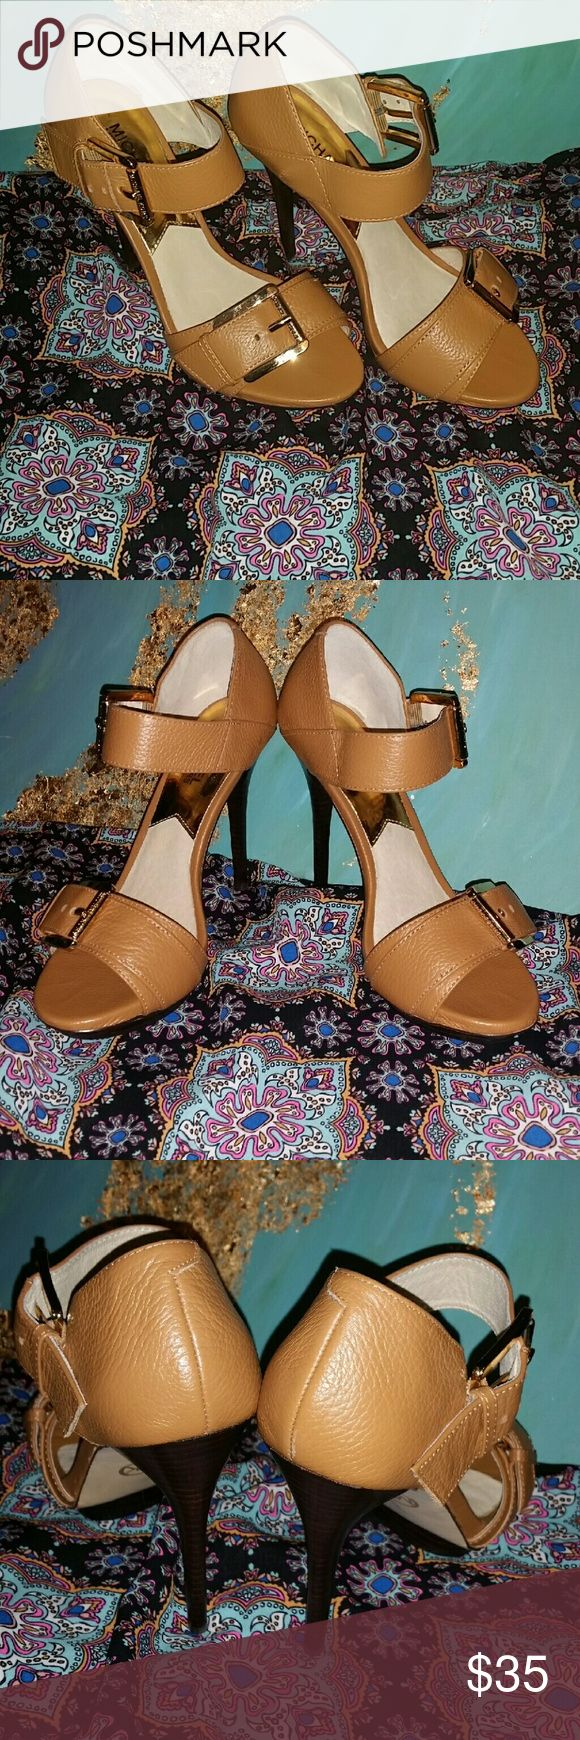 """Michael Kors tan high heels. Sz 8  (NWOT) Very nice in like new condition.  Sz 8 Tan Michael Kors high heels.  No marks, scuffing or noticeable wear  5"""" spike heel with gold tone buckle  Strap at toe and ankle.  Michael Kors embossed buvkle hardware Michael Kors Shoes Heels"""